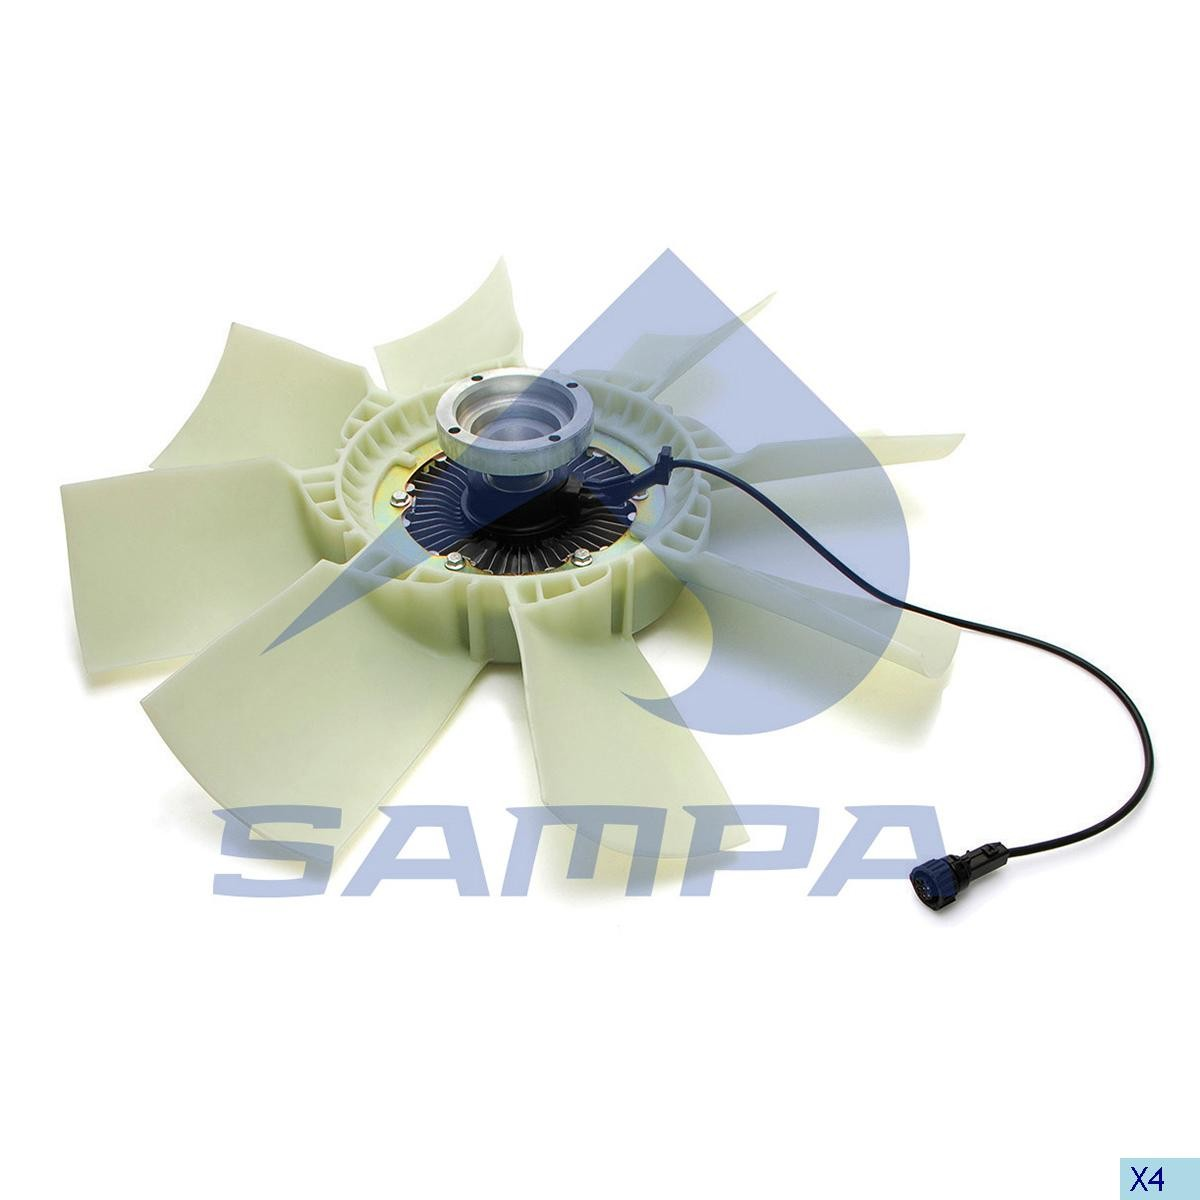 Cupla ventilator photo